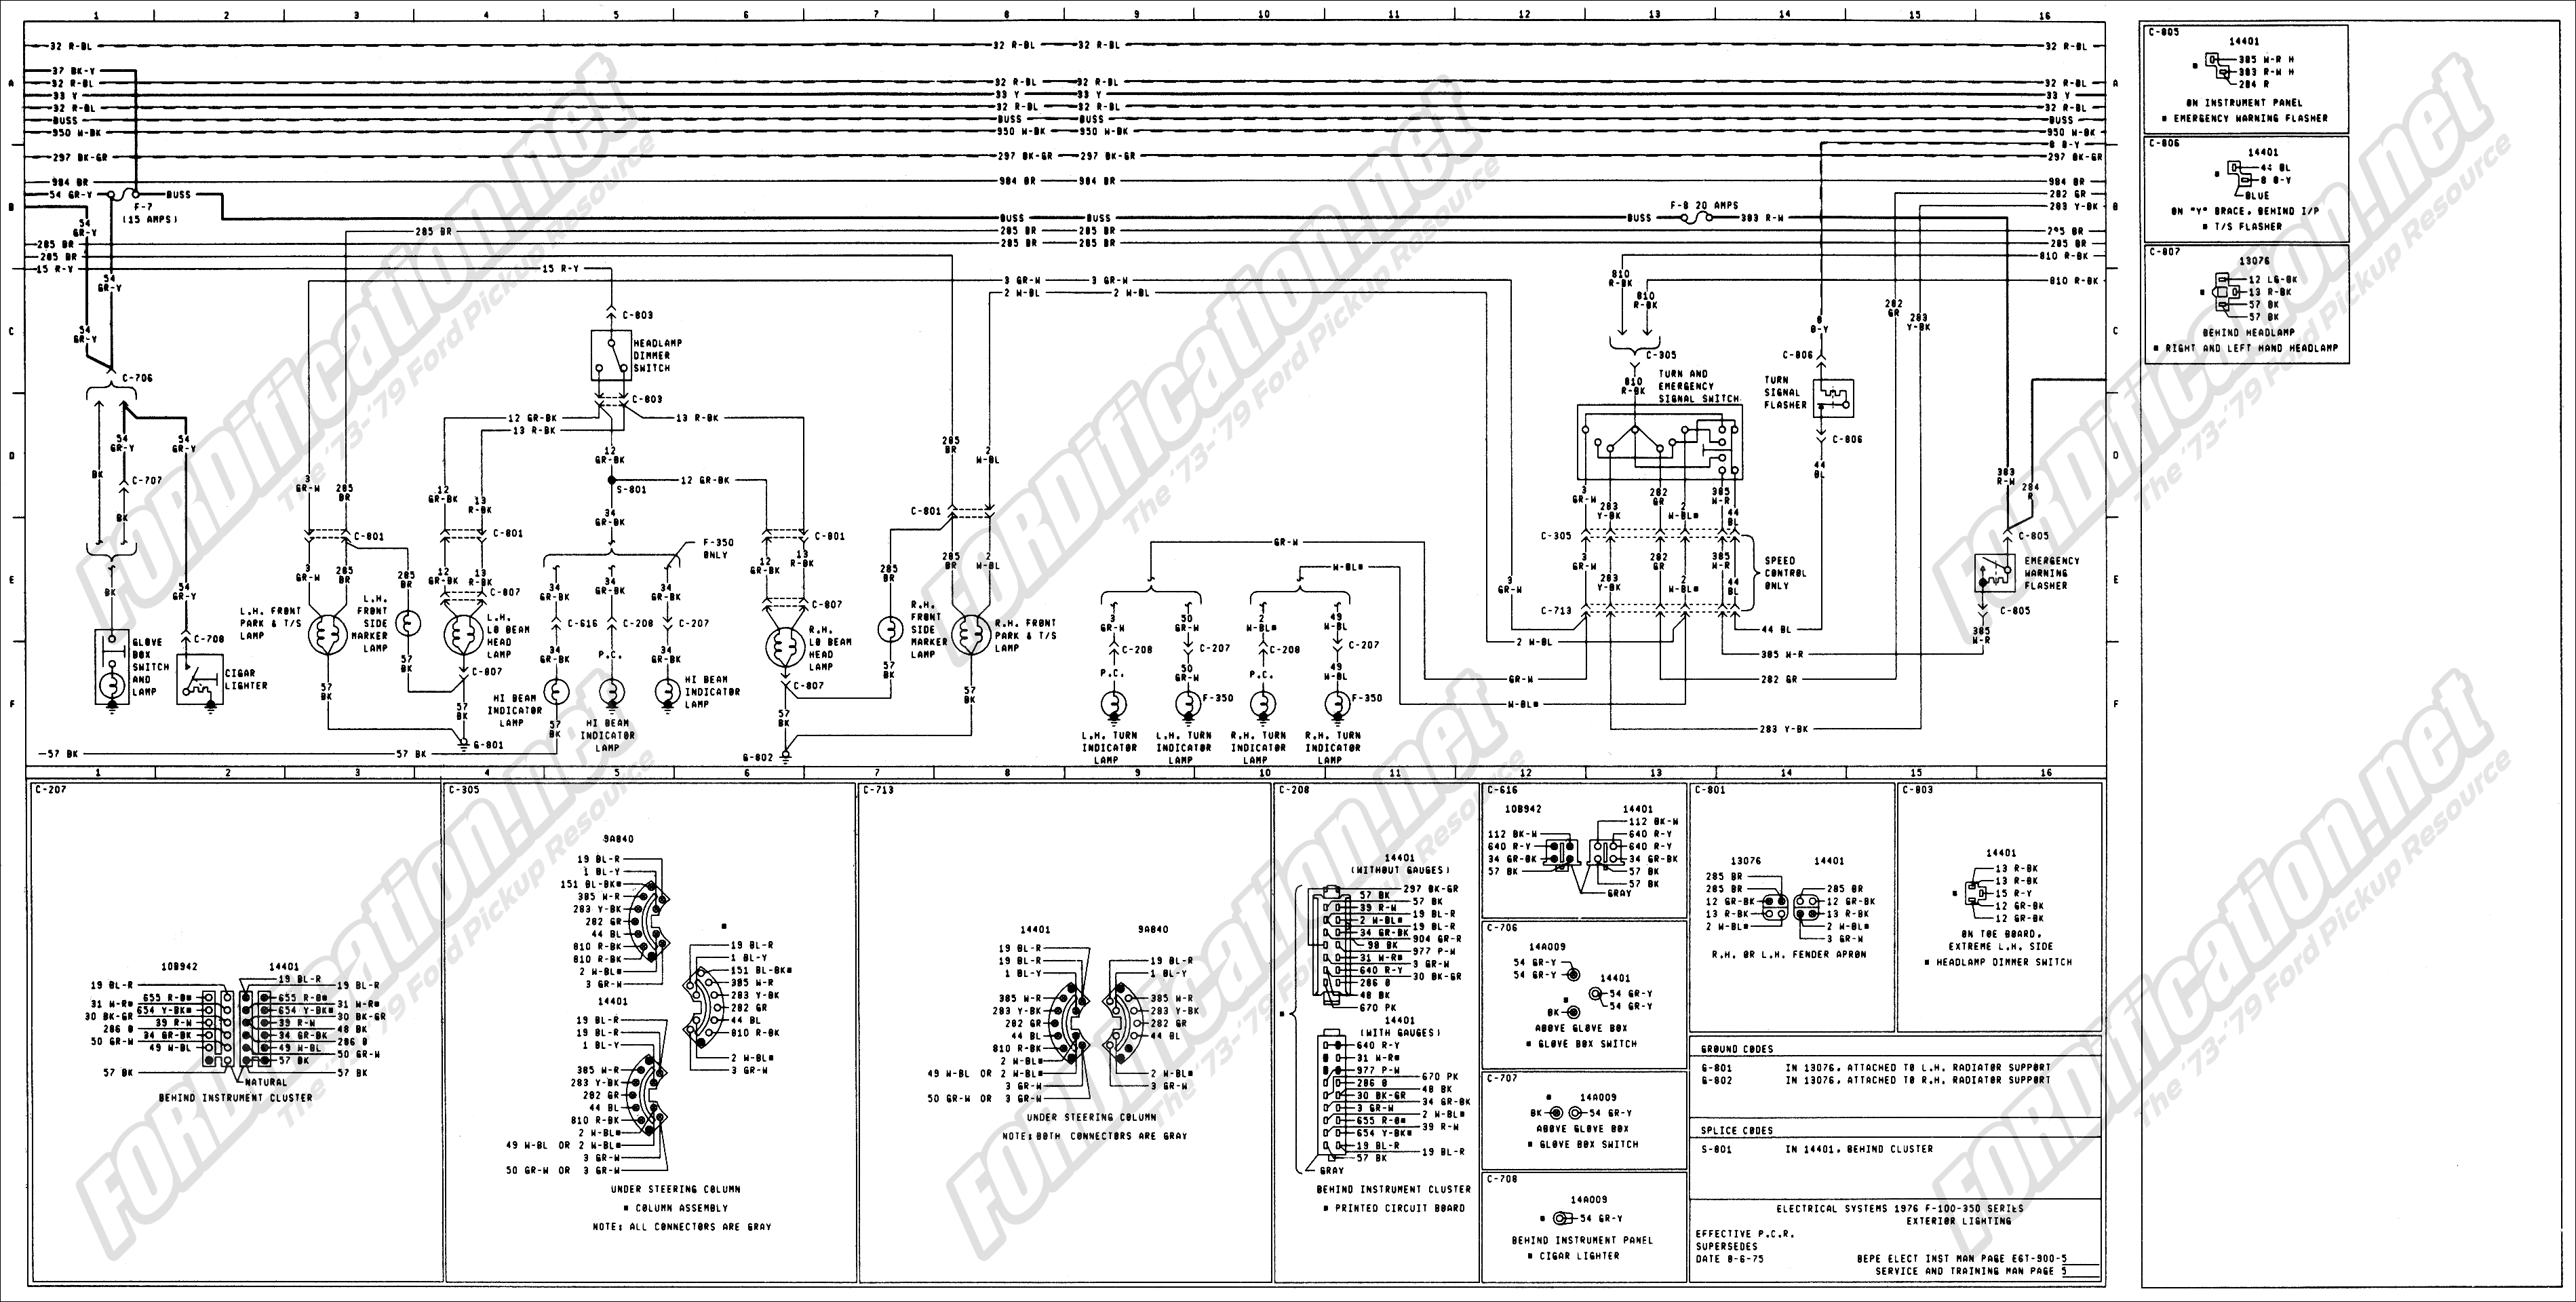 Wiring Master Of on Gm Turn Signal Wire Schematic Diagrams Ford F Wiring